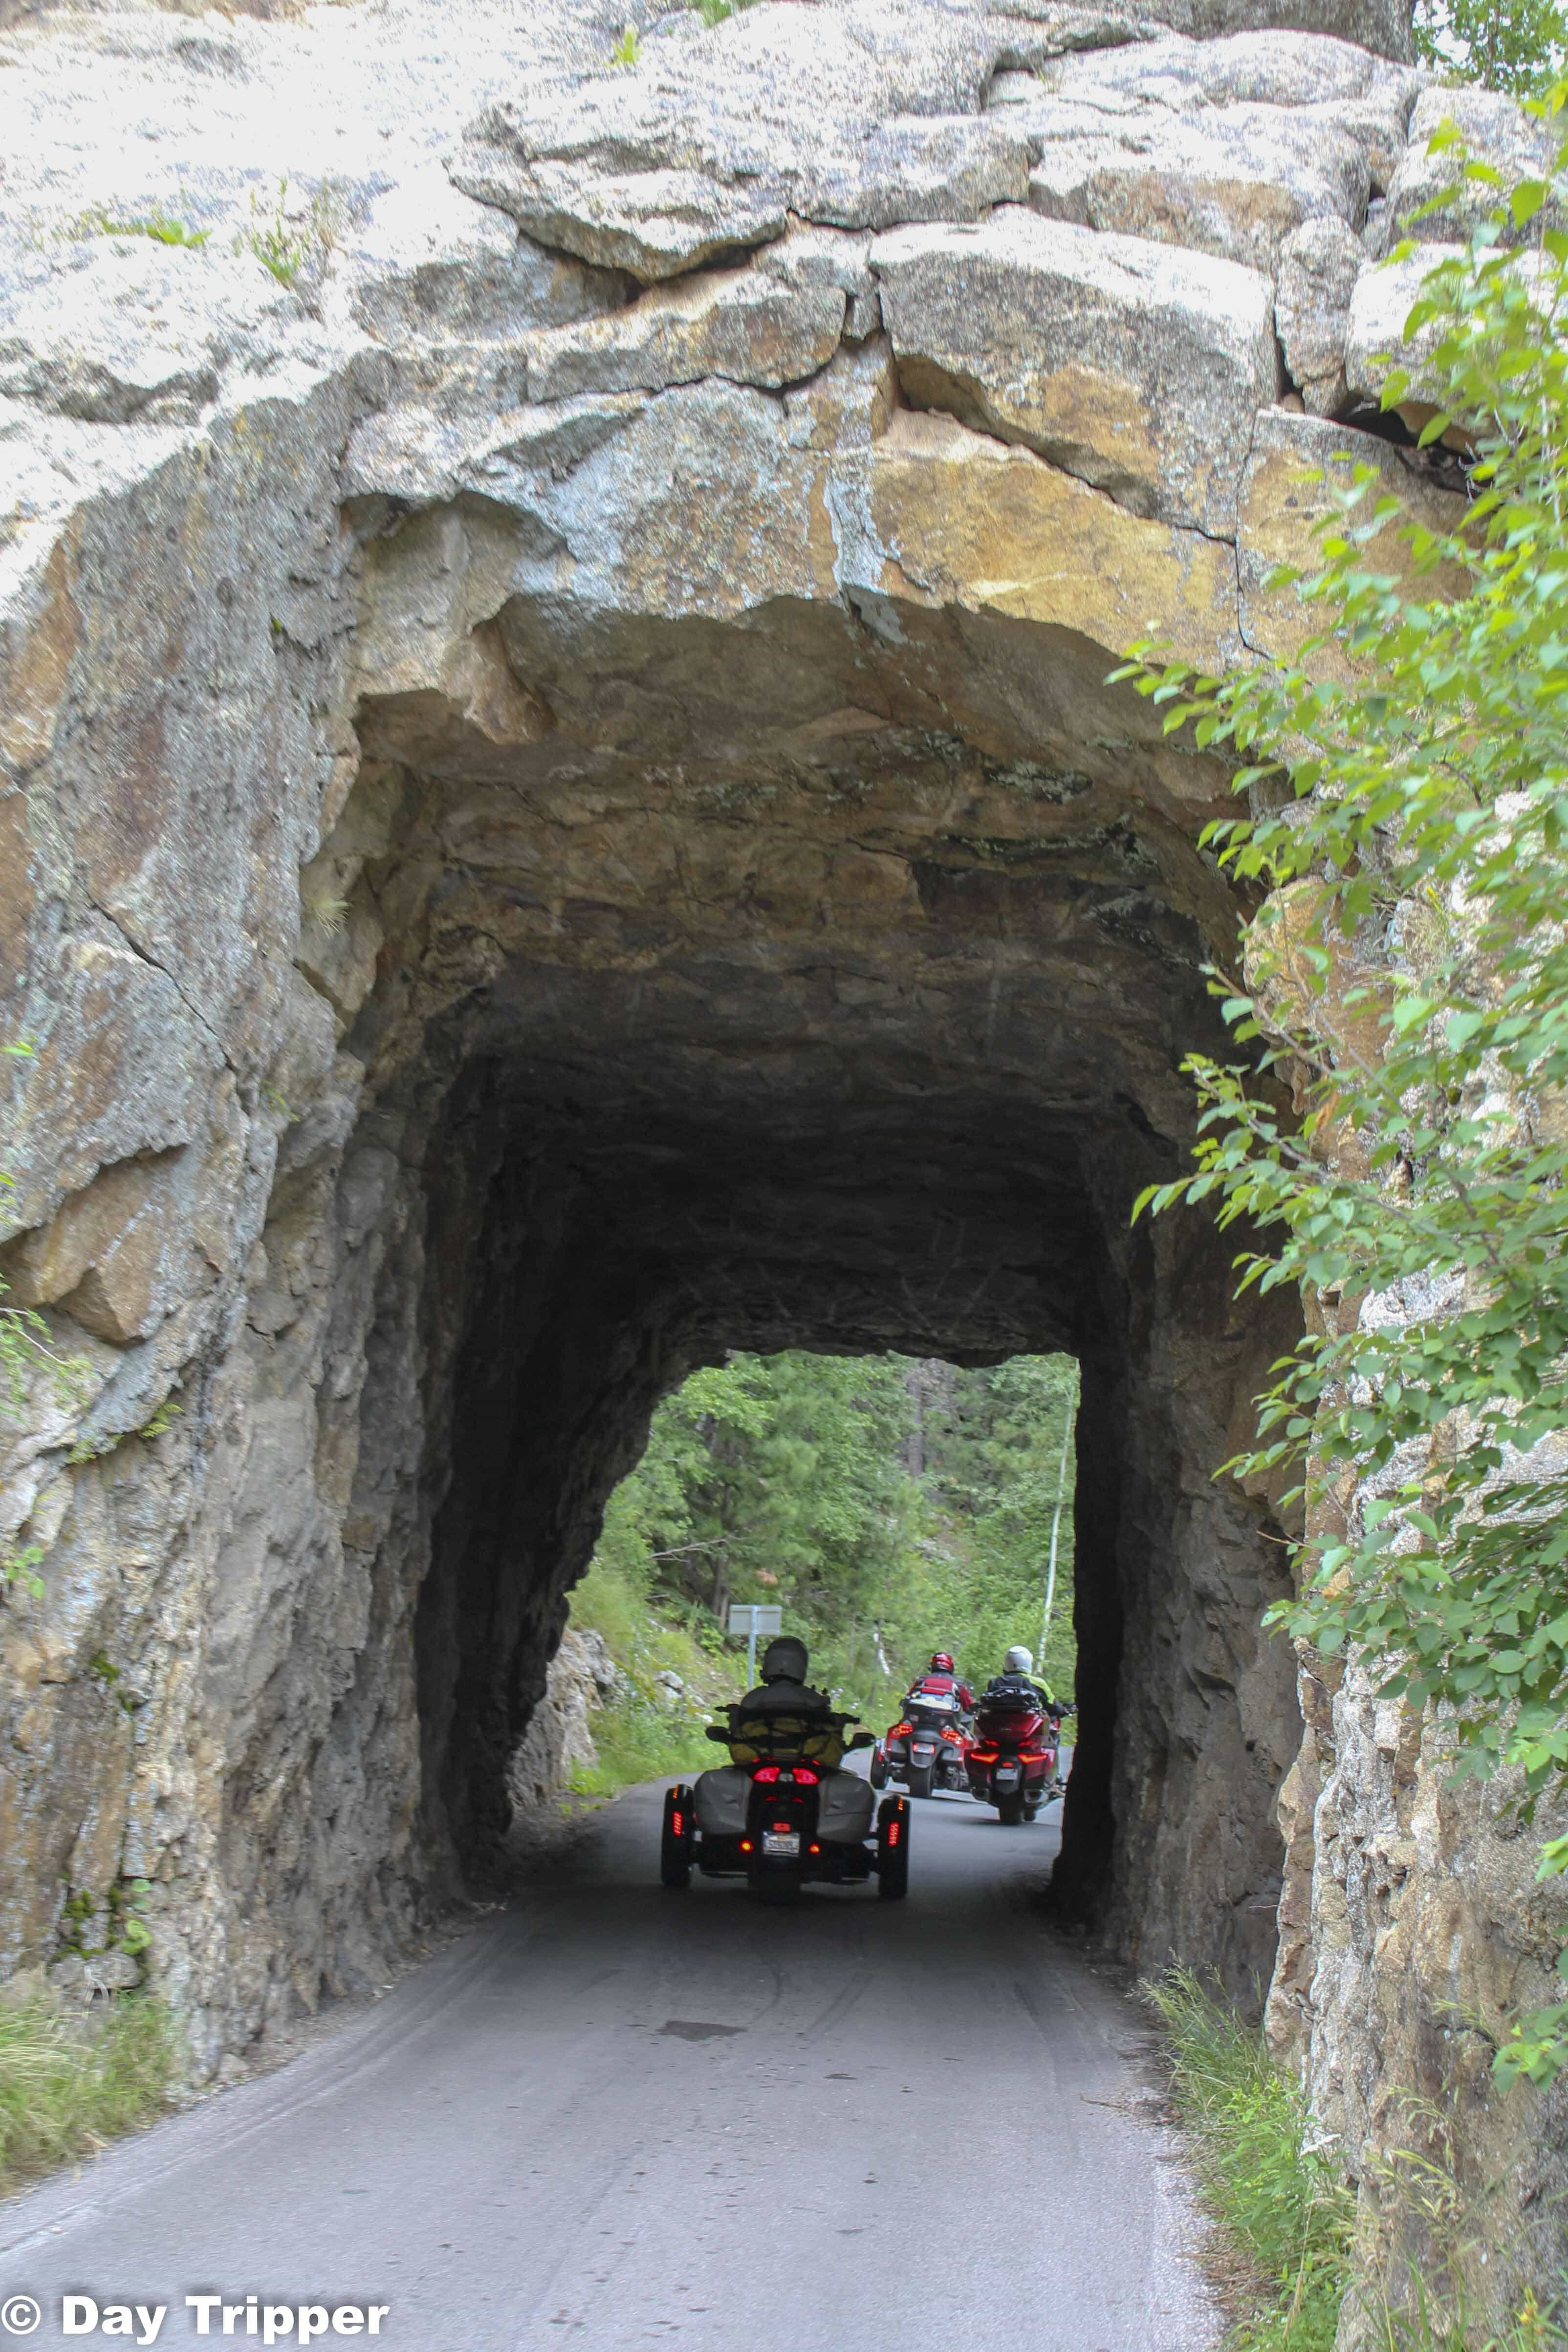 Motorcycles crossing through the tunnels on Needles Highway